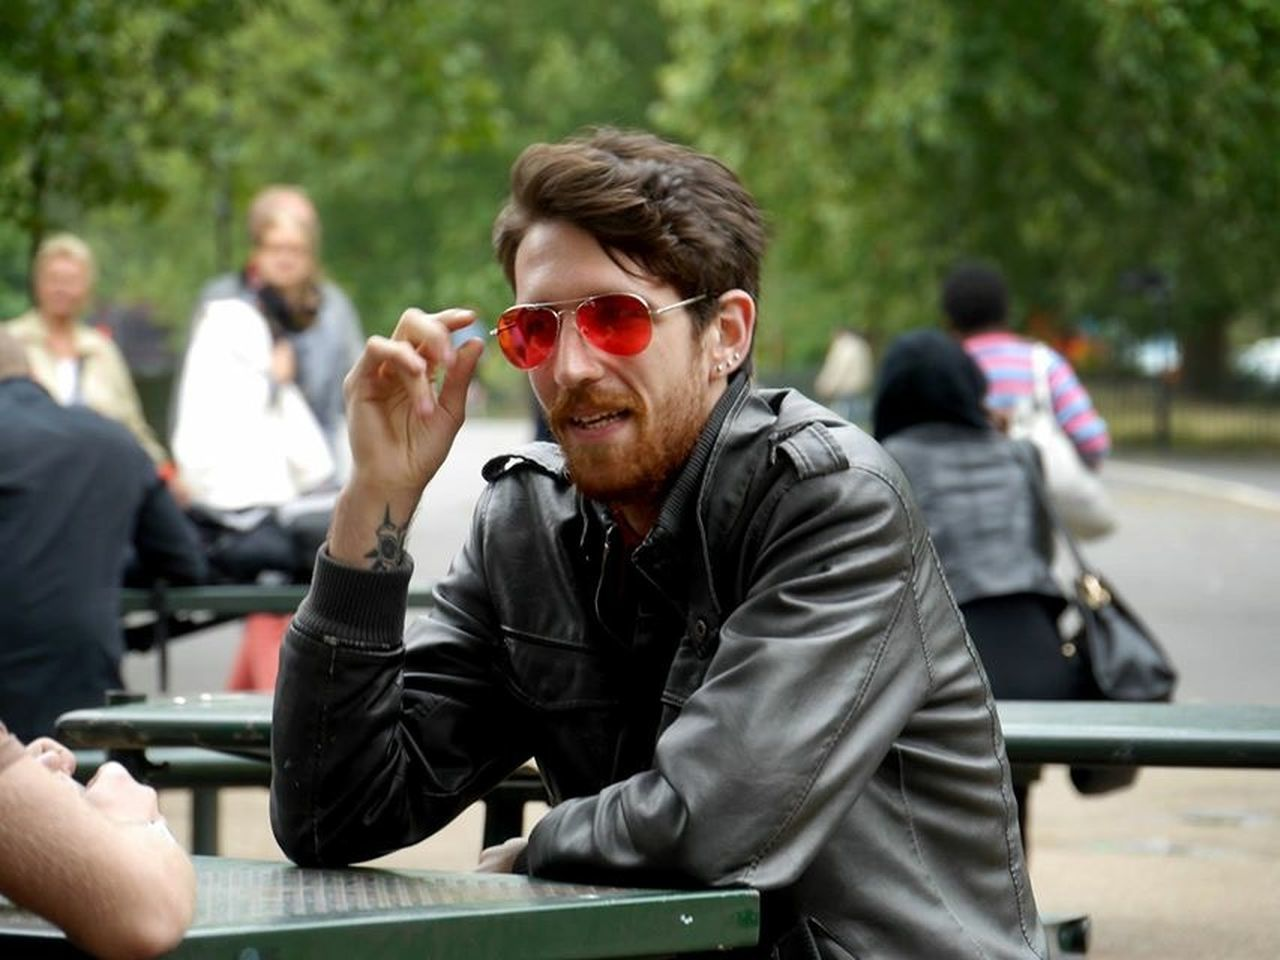 young men, real people, sunglasses, young adult, casual clothing, day, leisure activity, focus on foreground, outdoors, sitting, men, togetherness, only men, adult, adults only, people